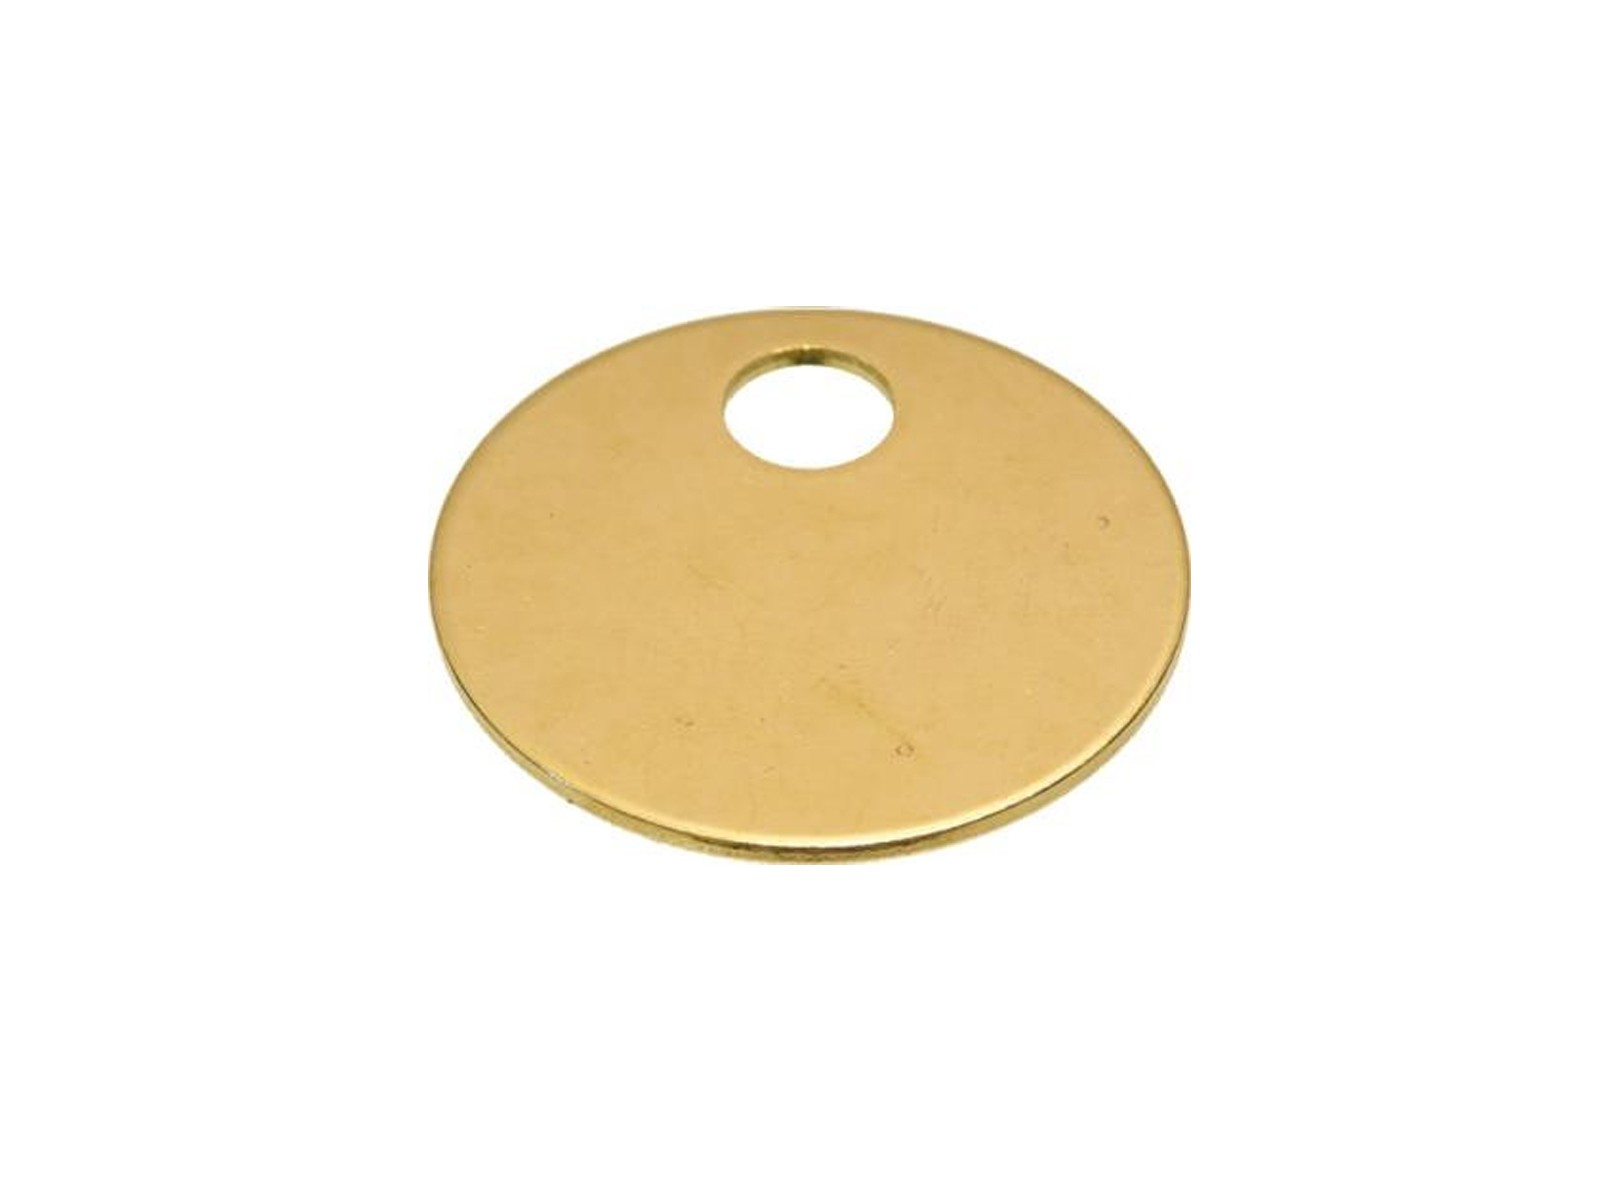 1 in Brass Tags, 1 Hole, 100/box   -12-